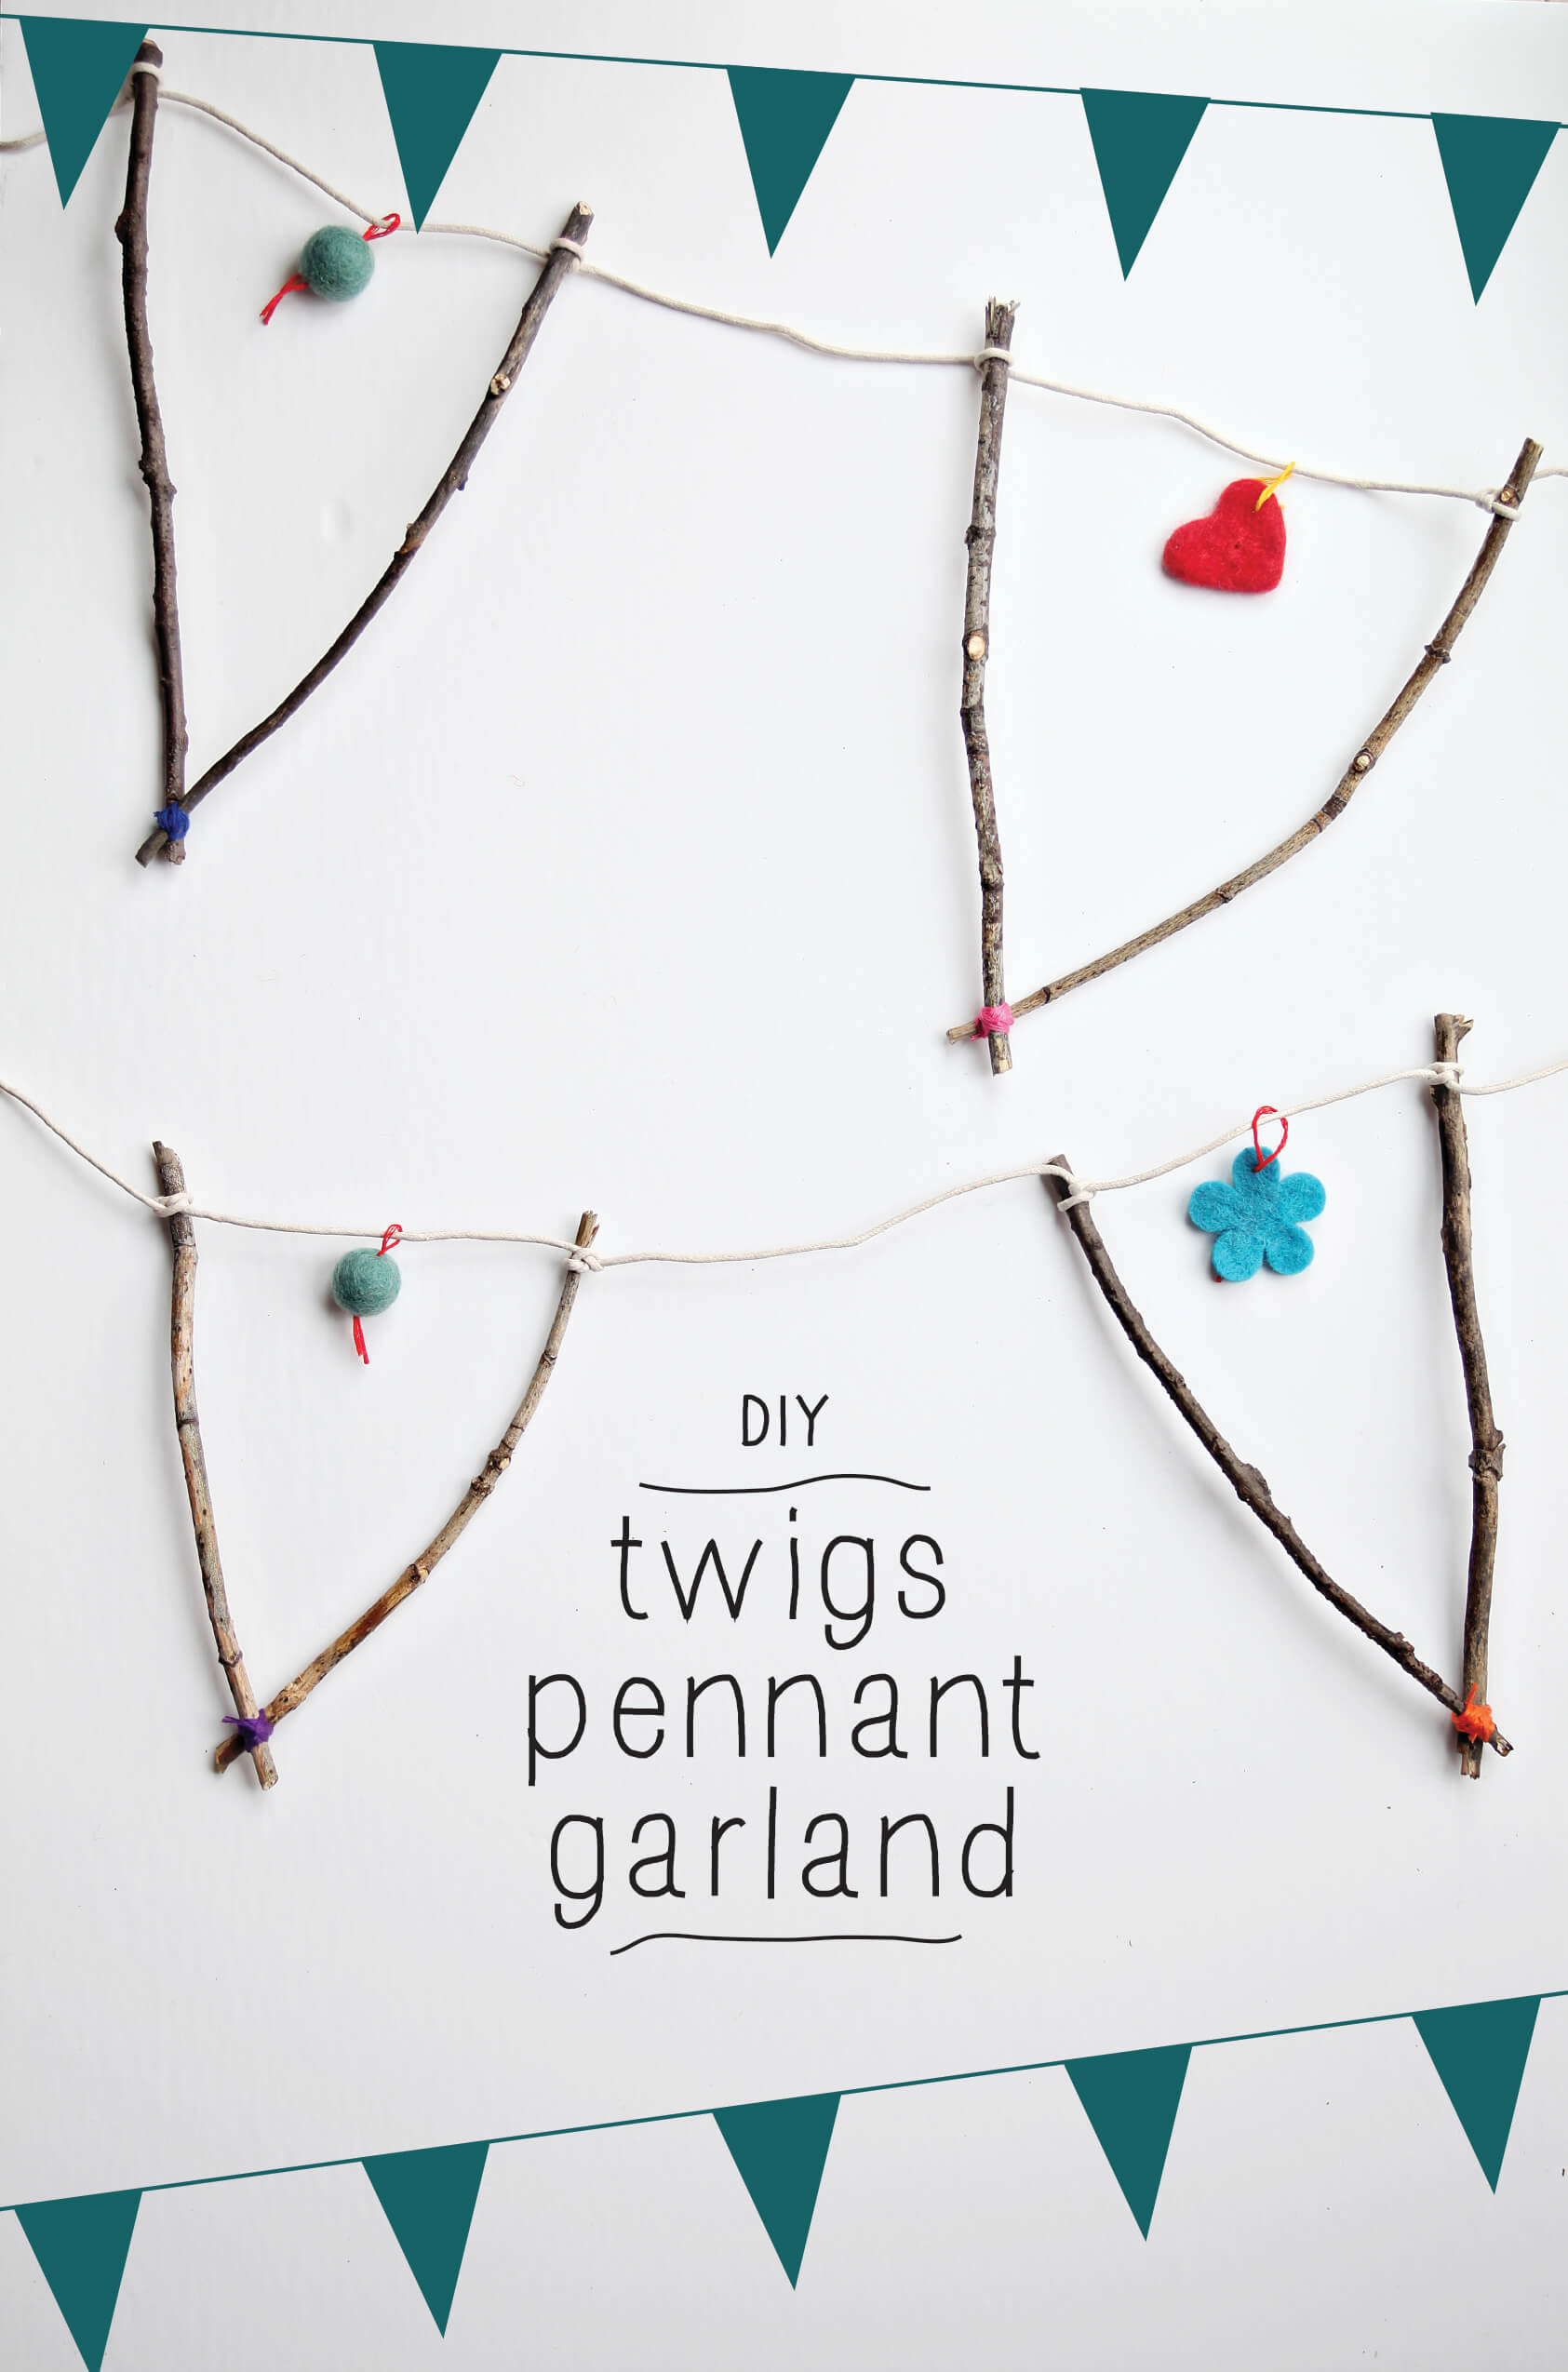 Twig Pennant Garland for Parties or Display